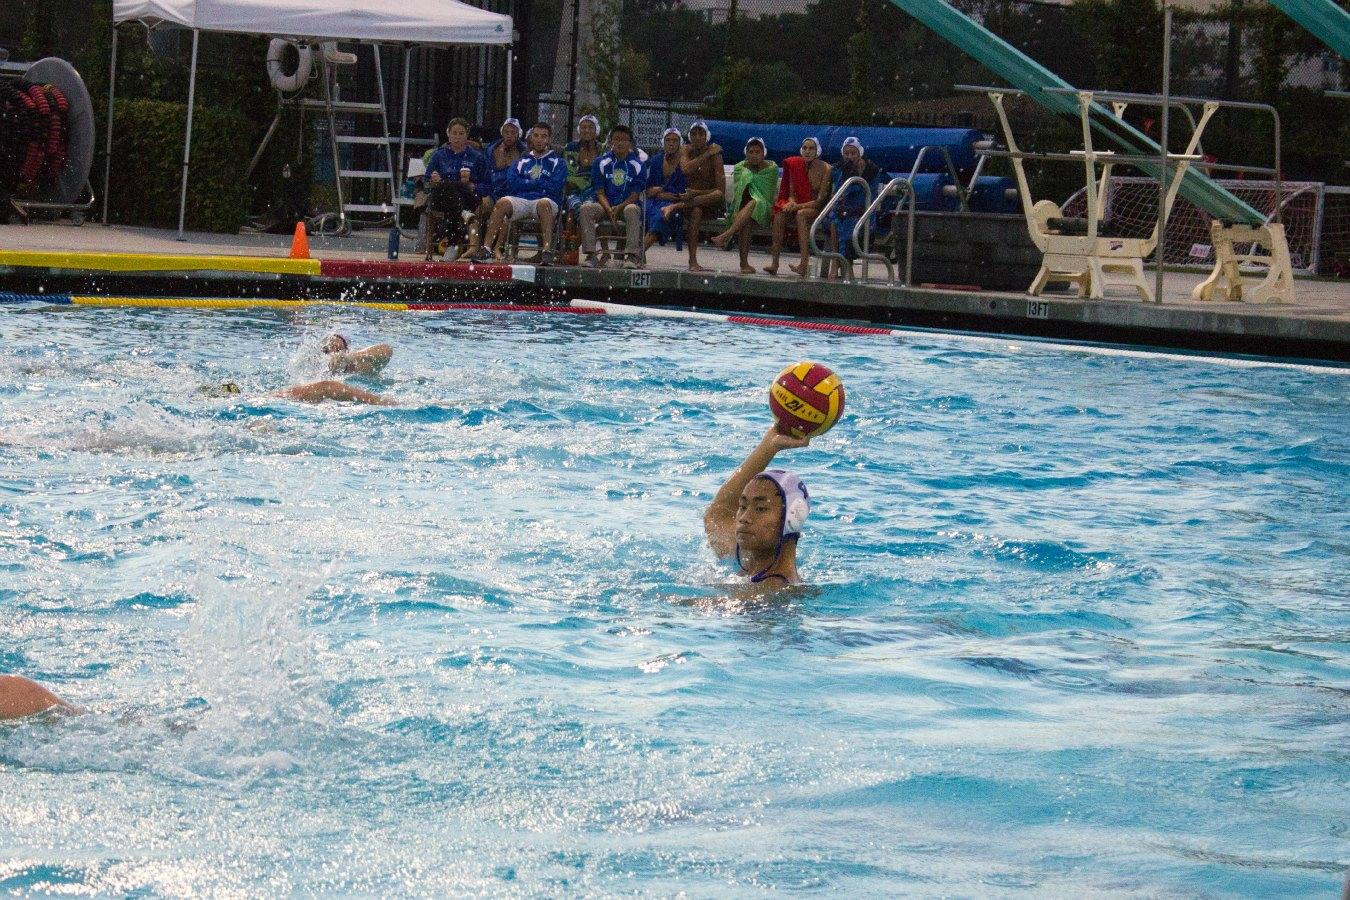 Senior Patrick Fong looks up the pool to make a pass. Photo by Kimia Shahidi.